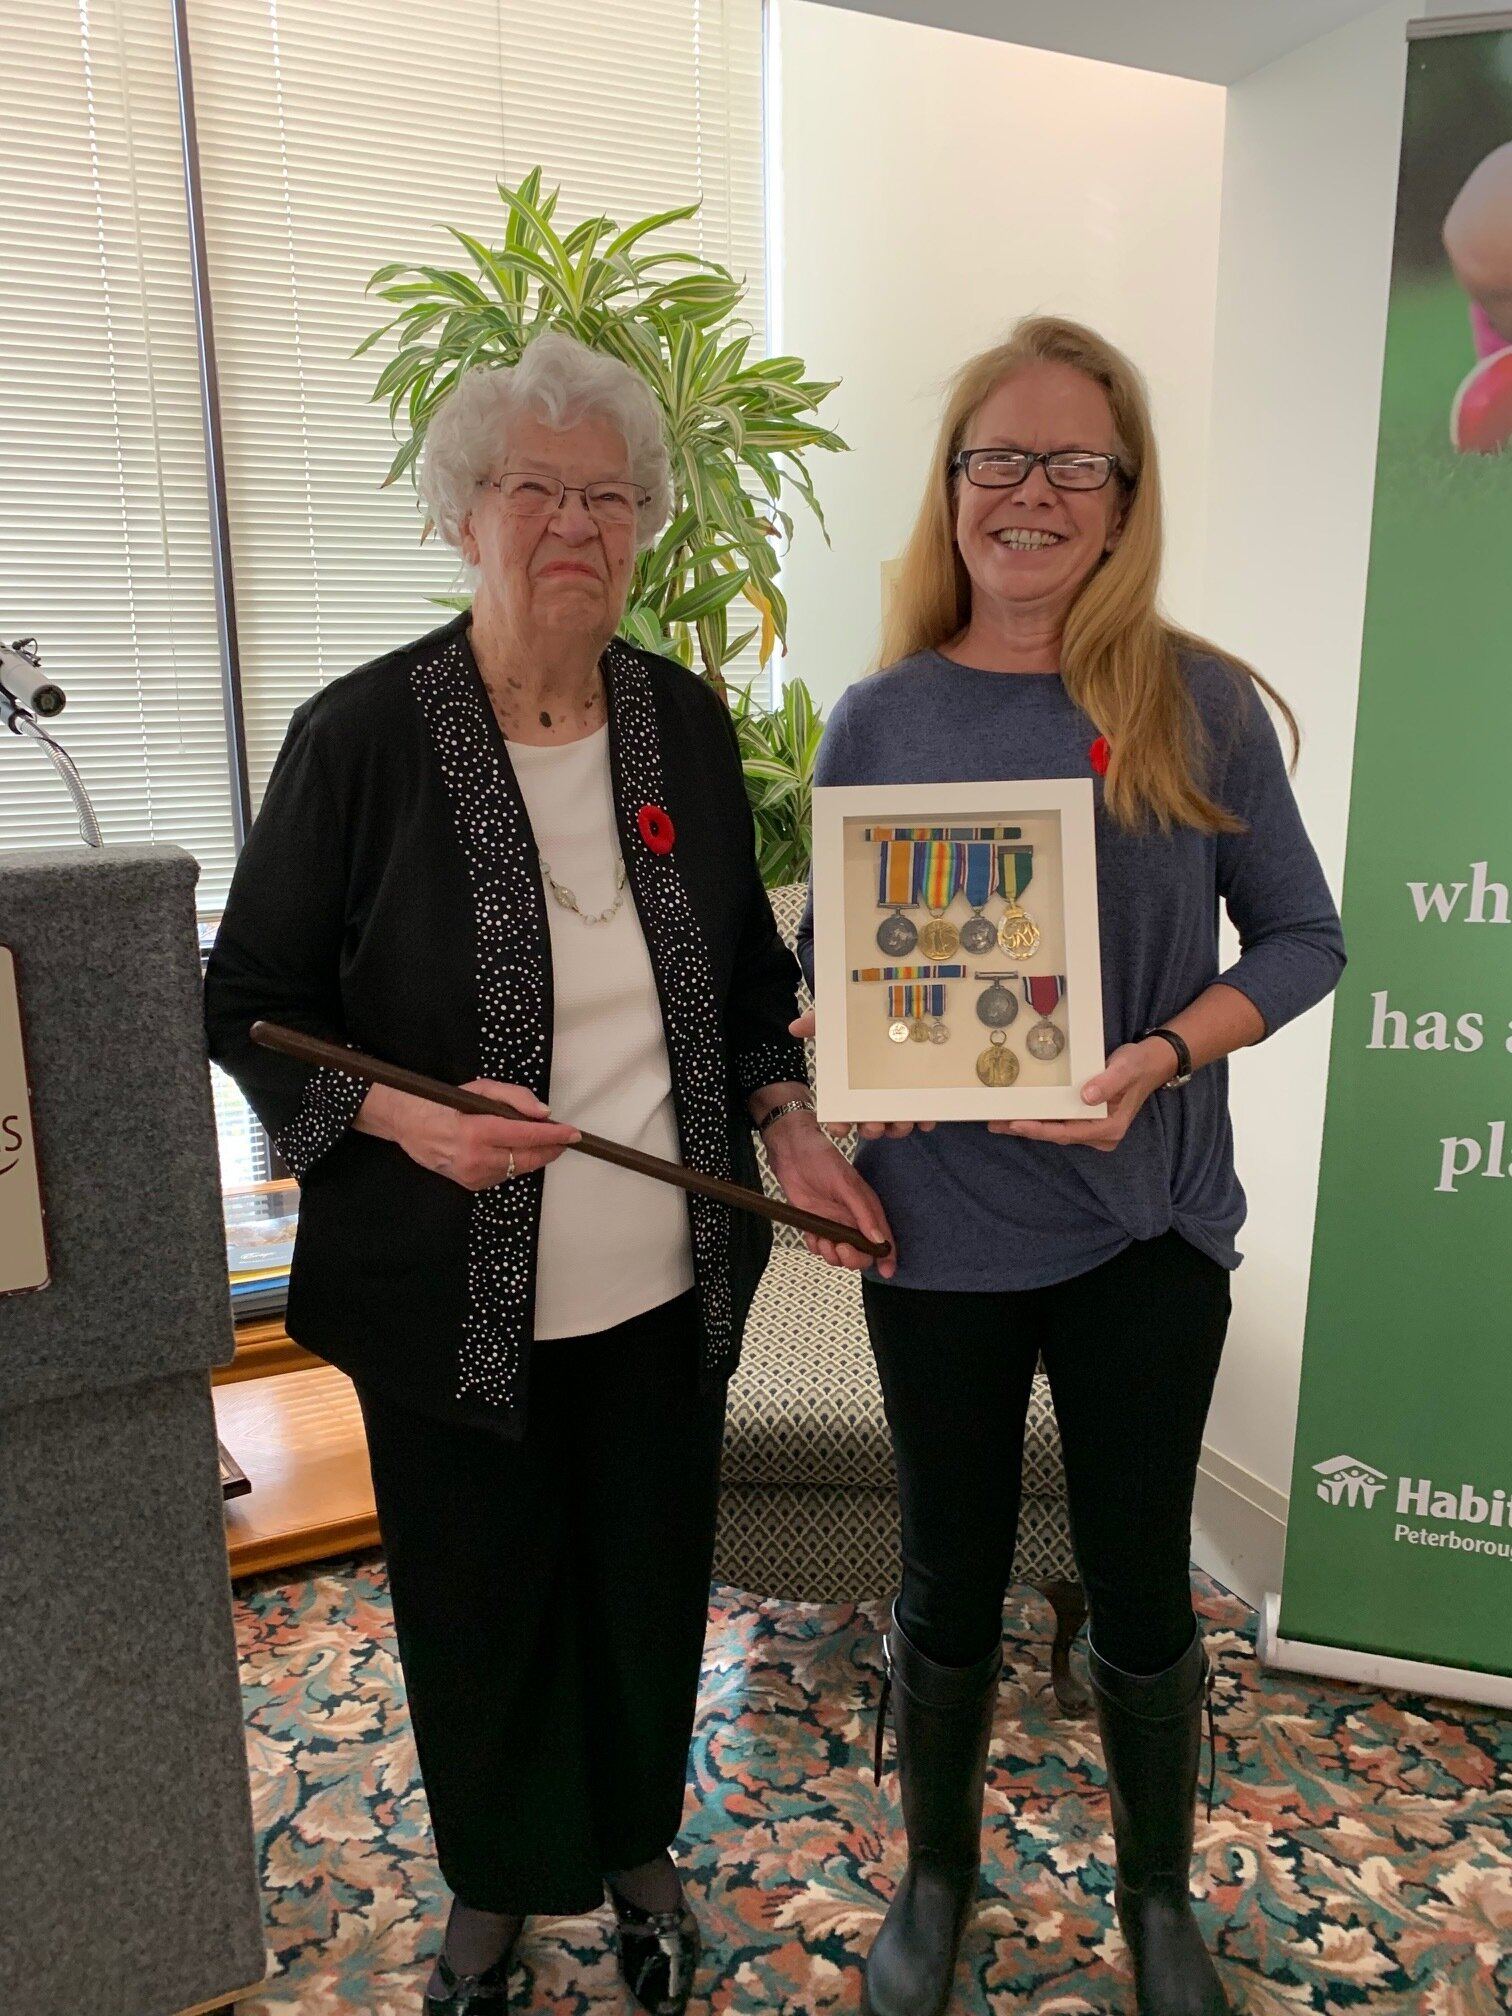 Catherine Allen pictured with Jill Bennett from Habitat Peterborough (photo by Neil Morton)